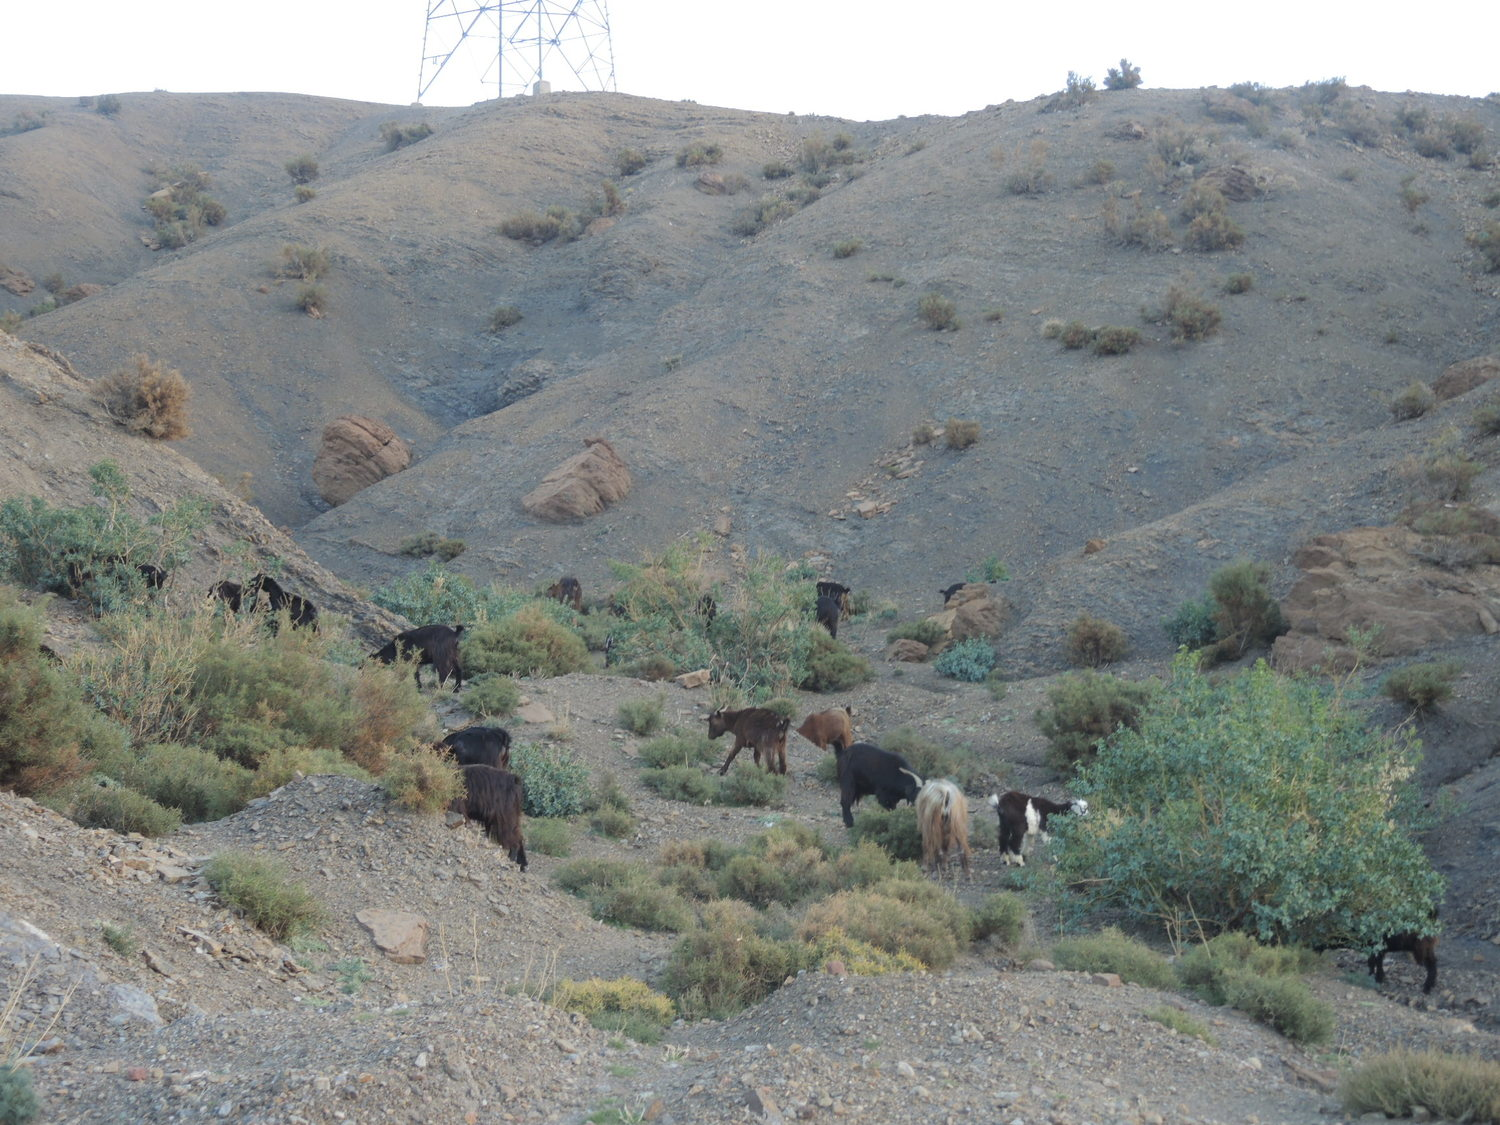 Goats in Atlas Mountains